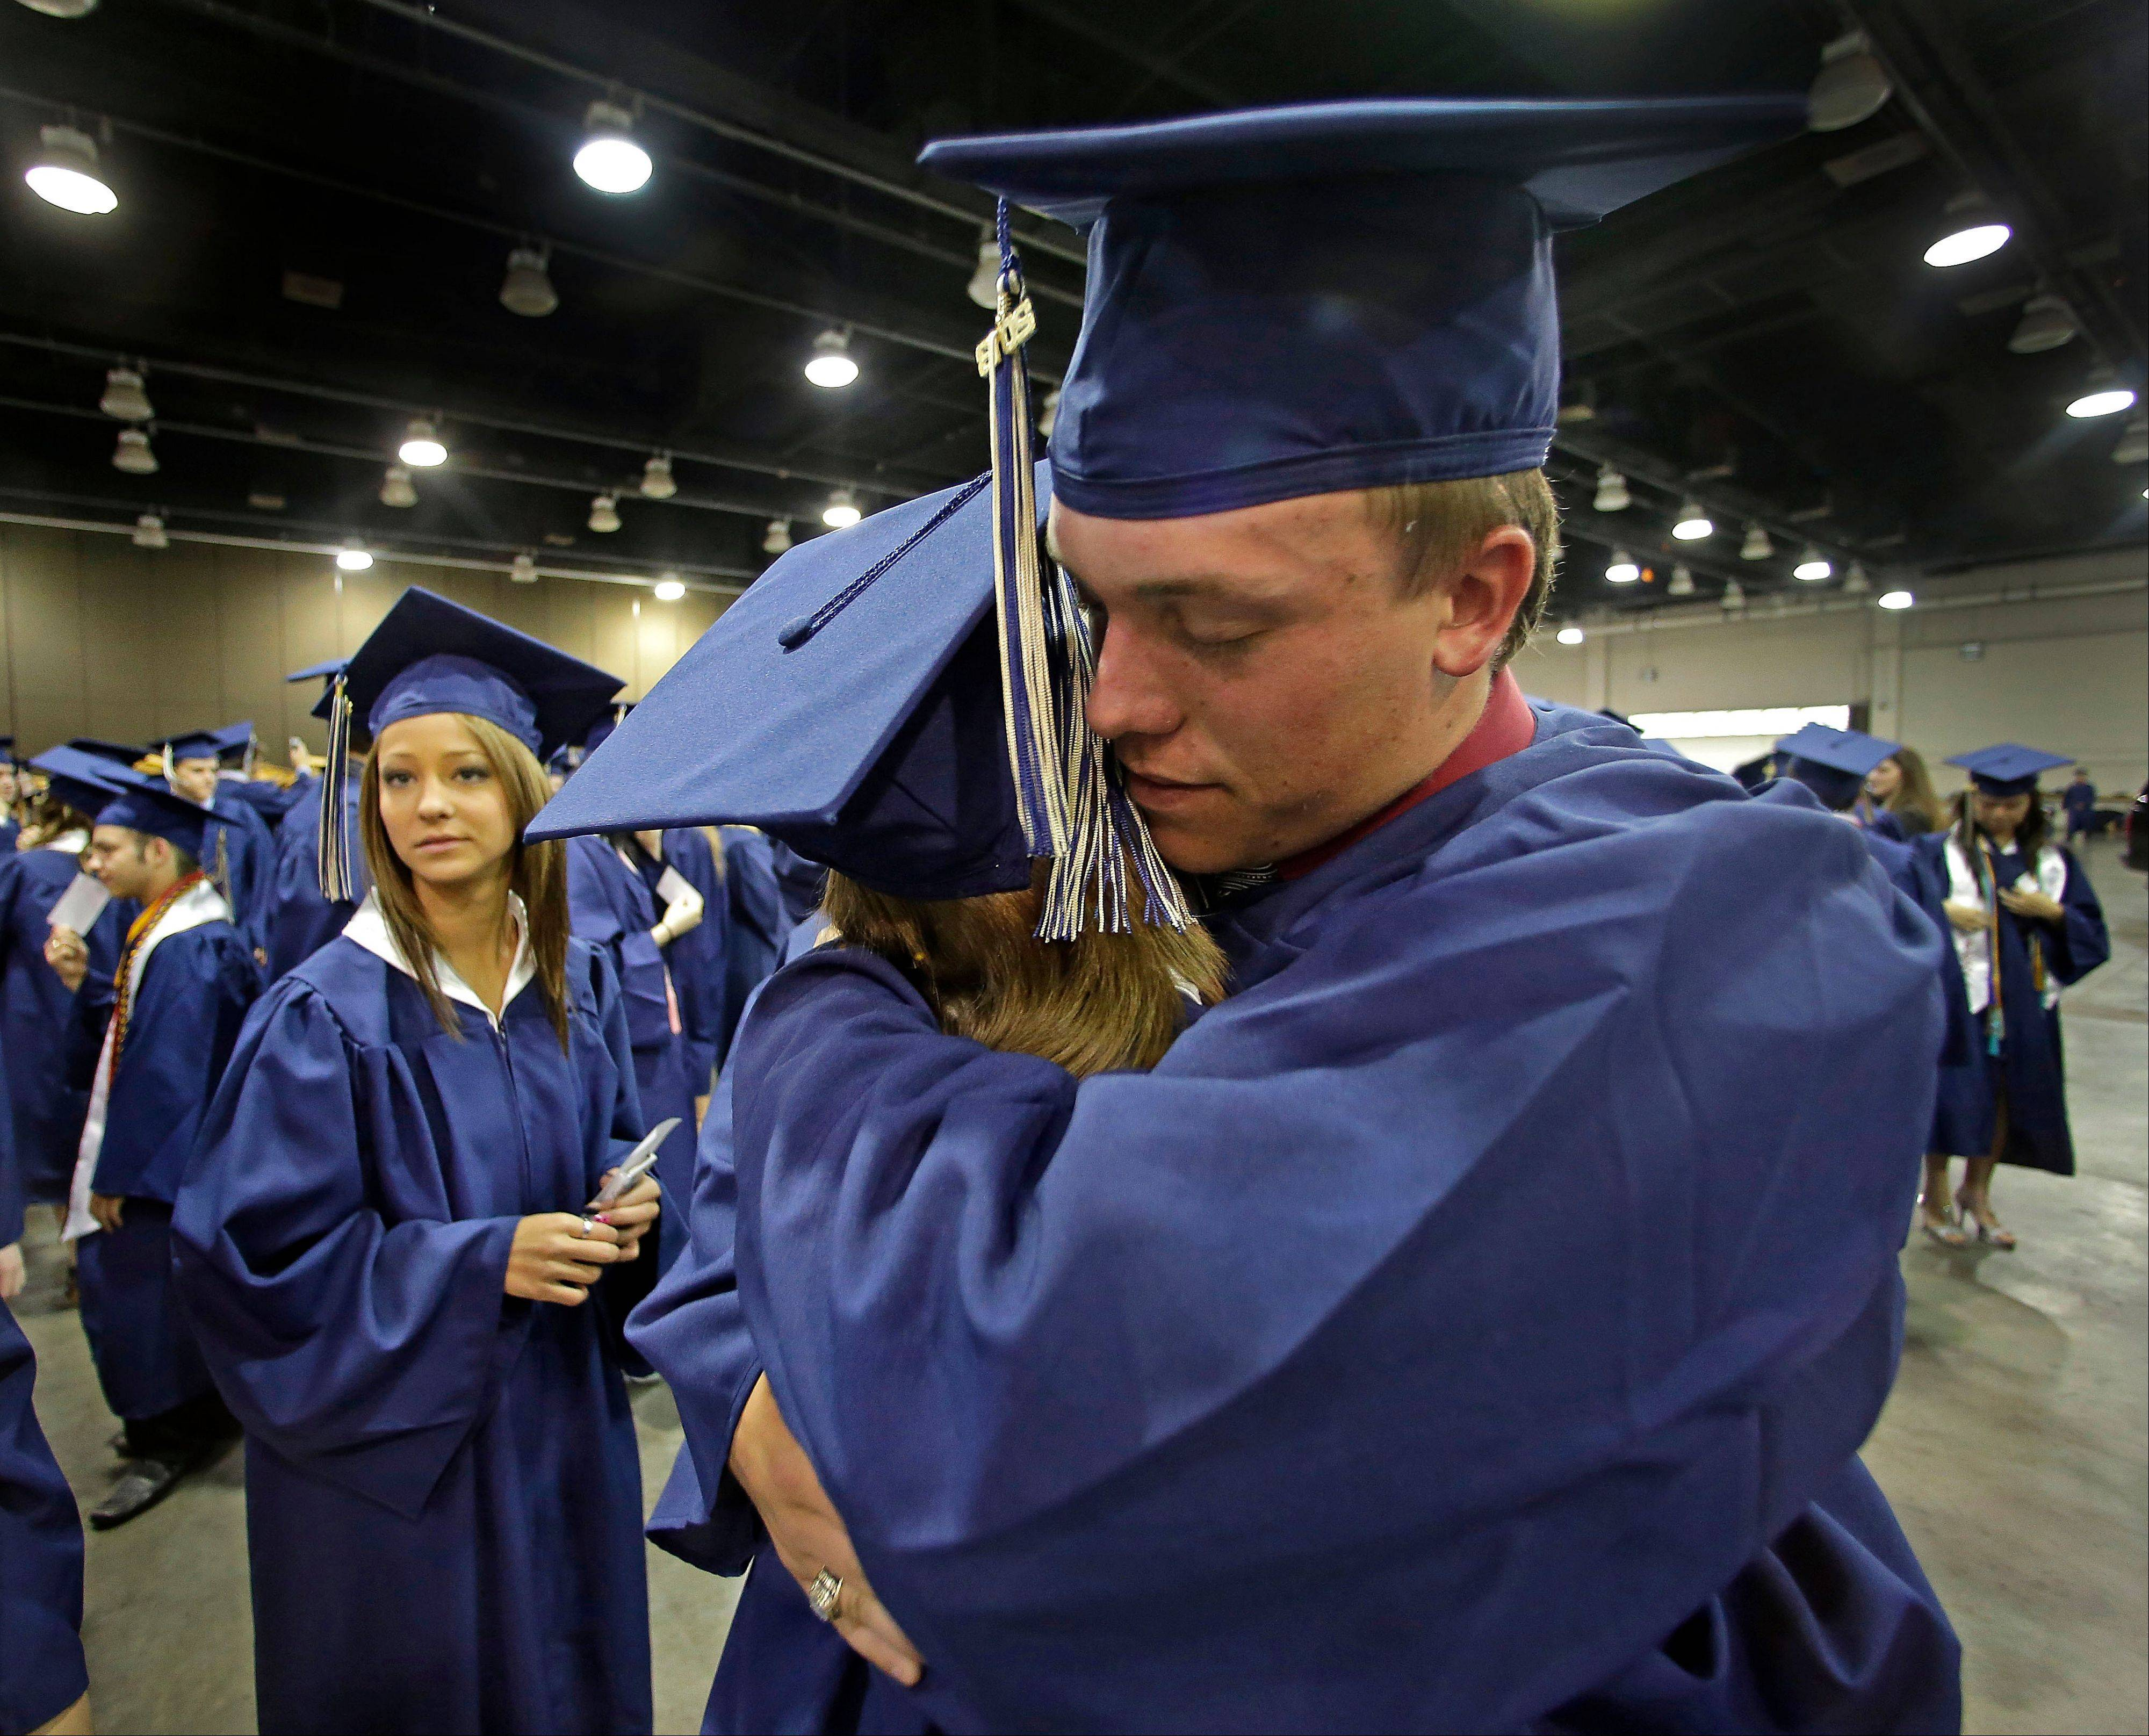 Southmoore High School senior Jake Spradling hugs a classmate as they get ready to attend their commencement ceremony.